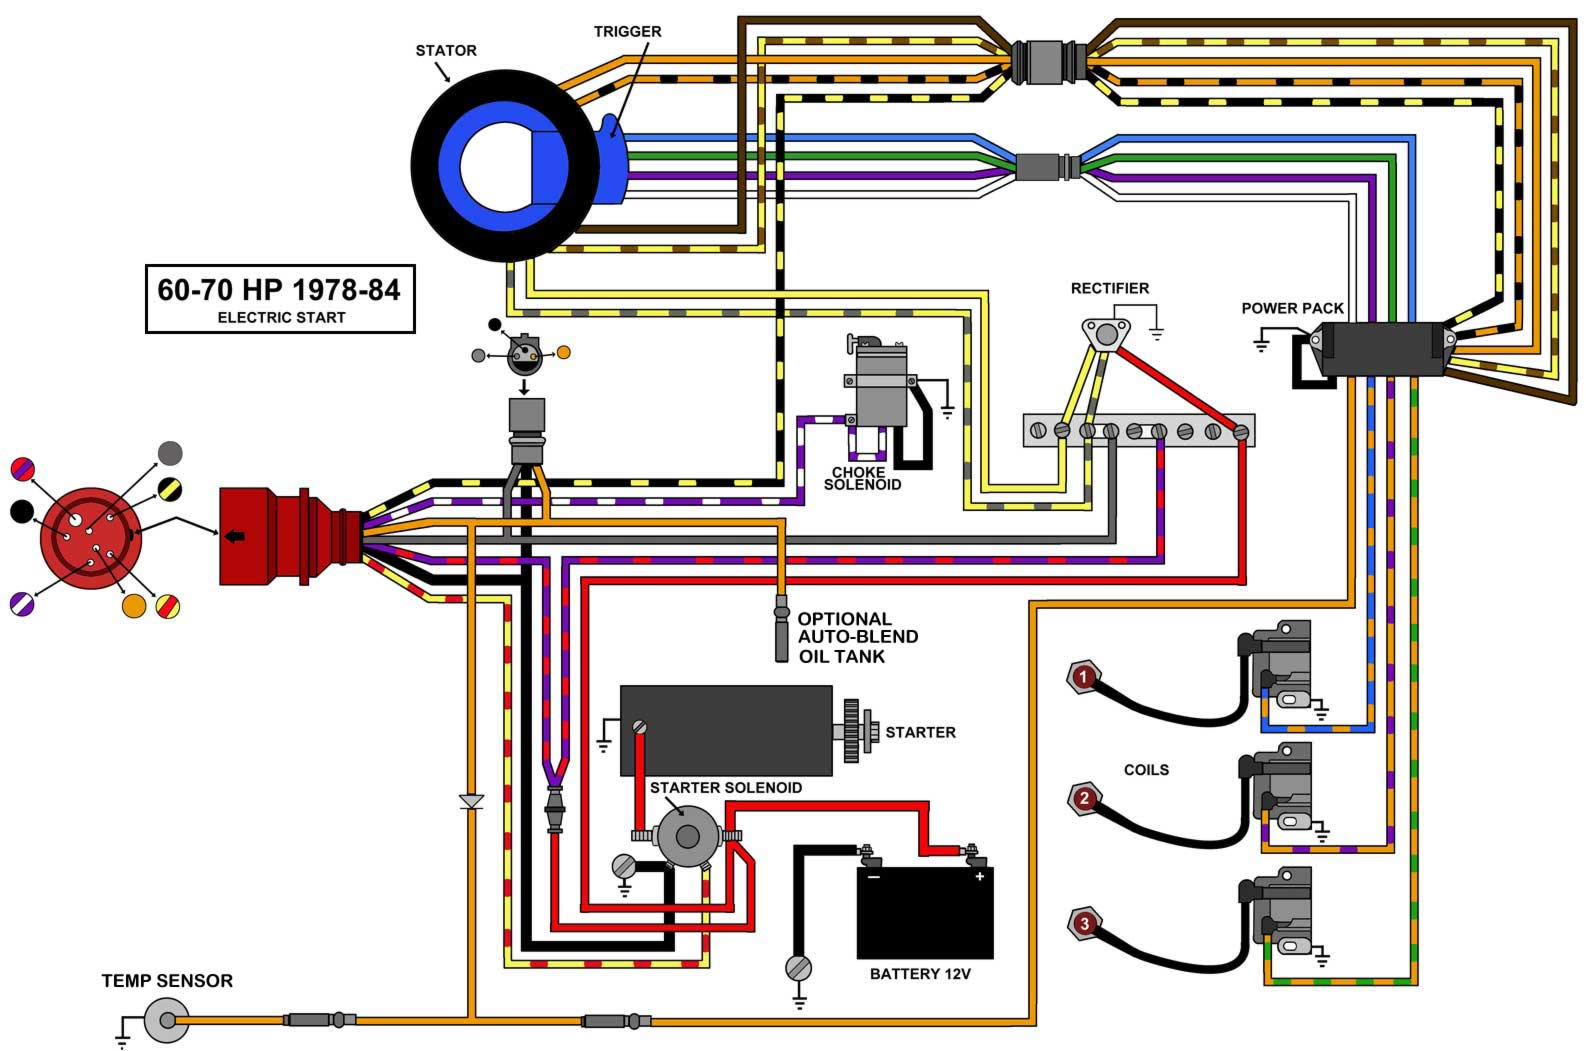 78 84_3 CYL_EL omc wiring harness diagram johmson wiring harness \u2022 wiring Boat Ignition Switch Wiring Diagram at creativeand.co